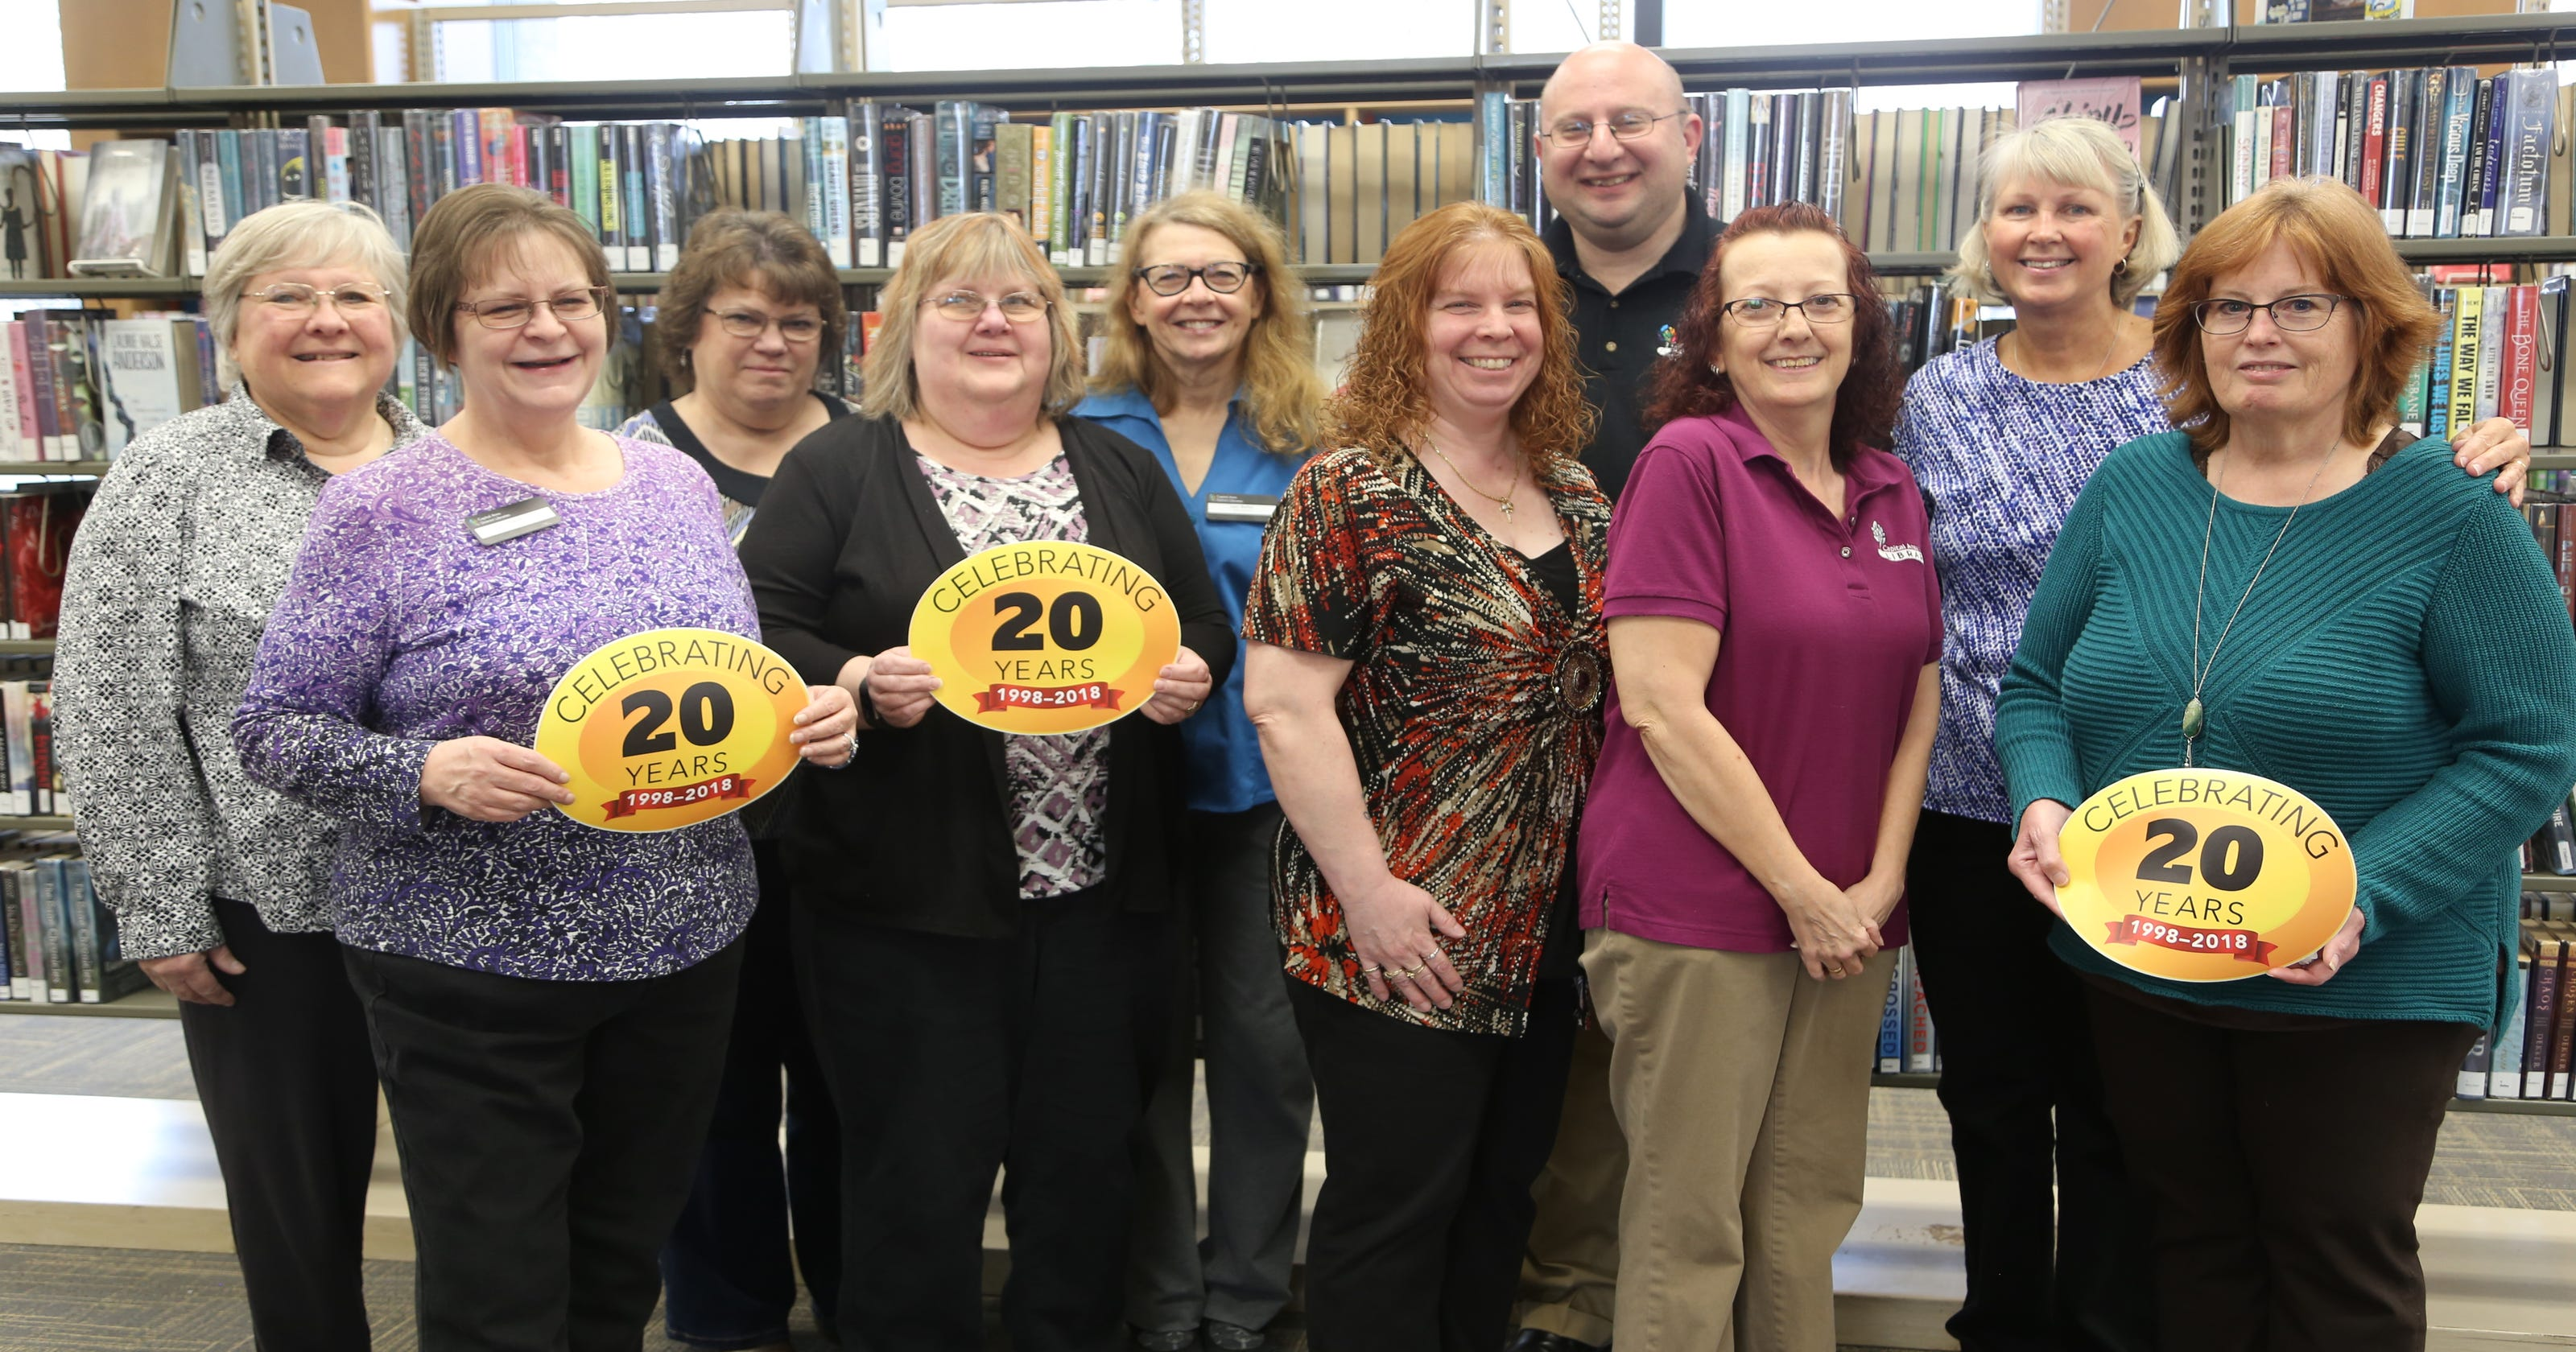 CADL shares 20 titles from 20 years serving Greater Lansing